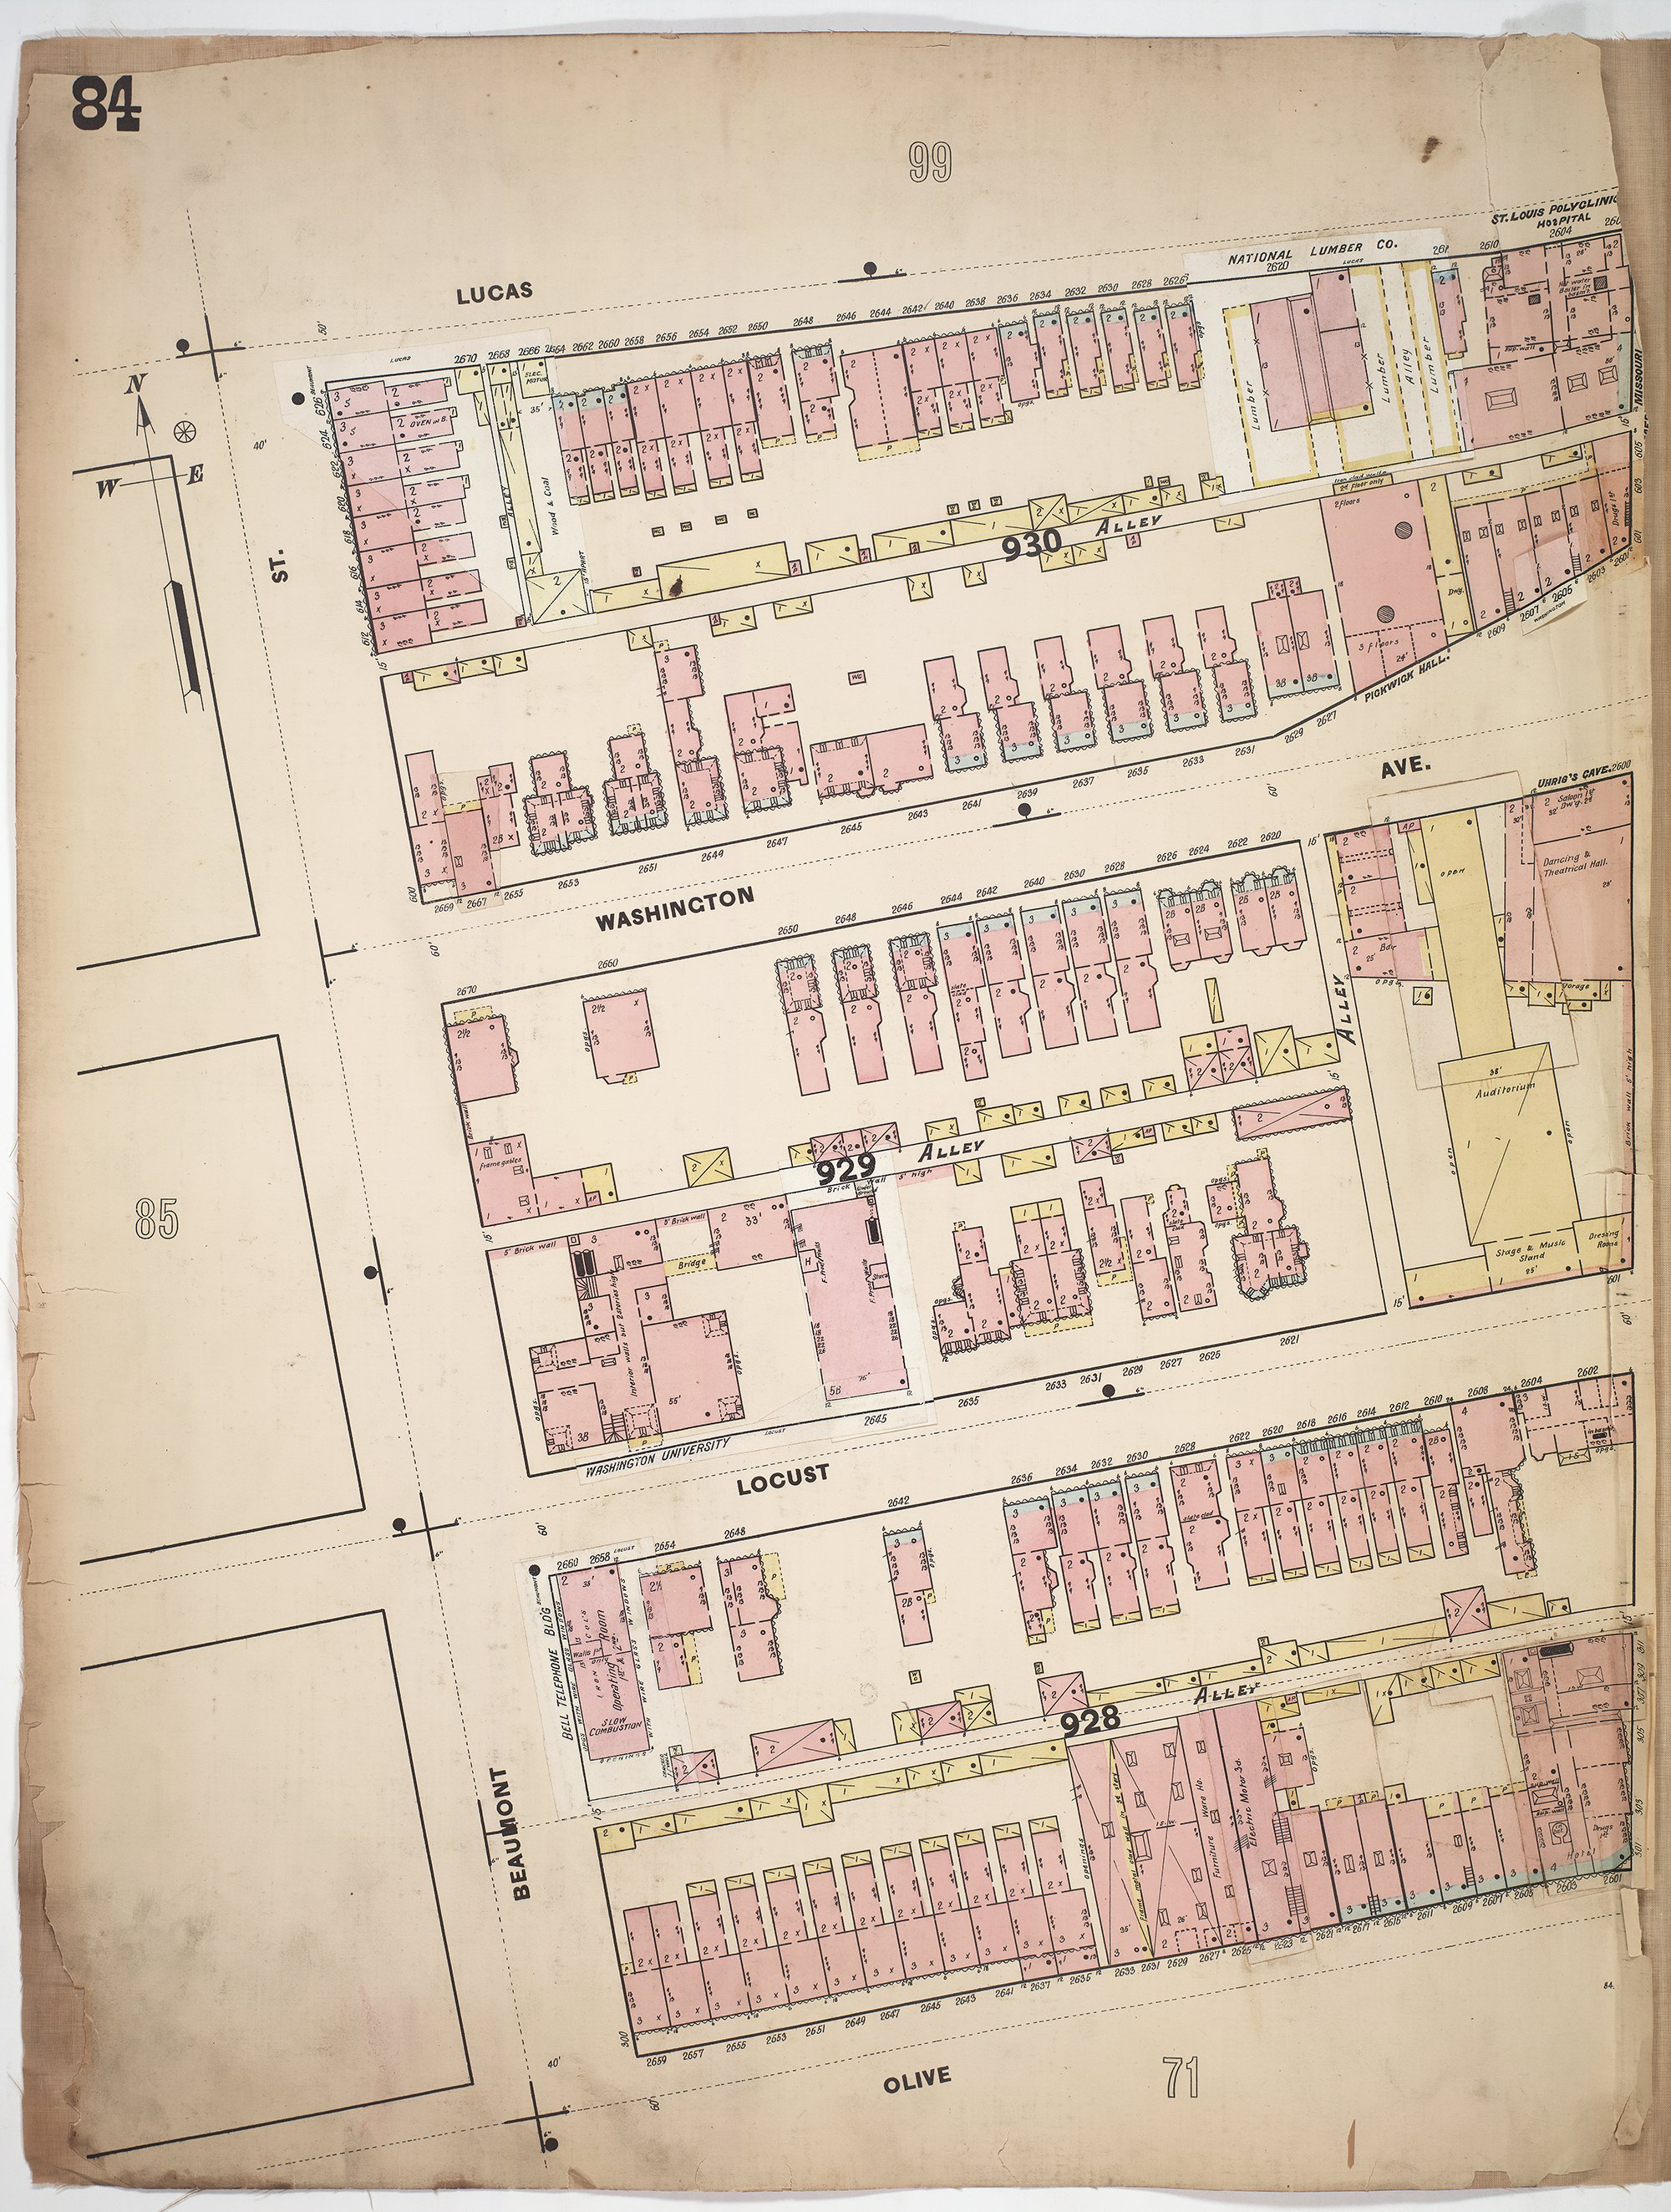 Whipple's Fire Insurance Map of 1897 showing the 2600 blocks of Washington and Locust Streets.